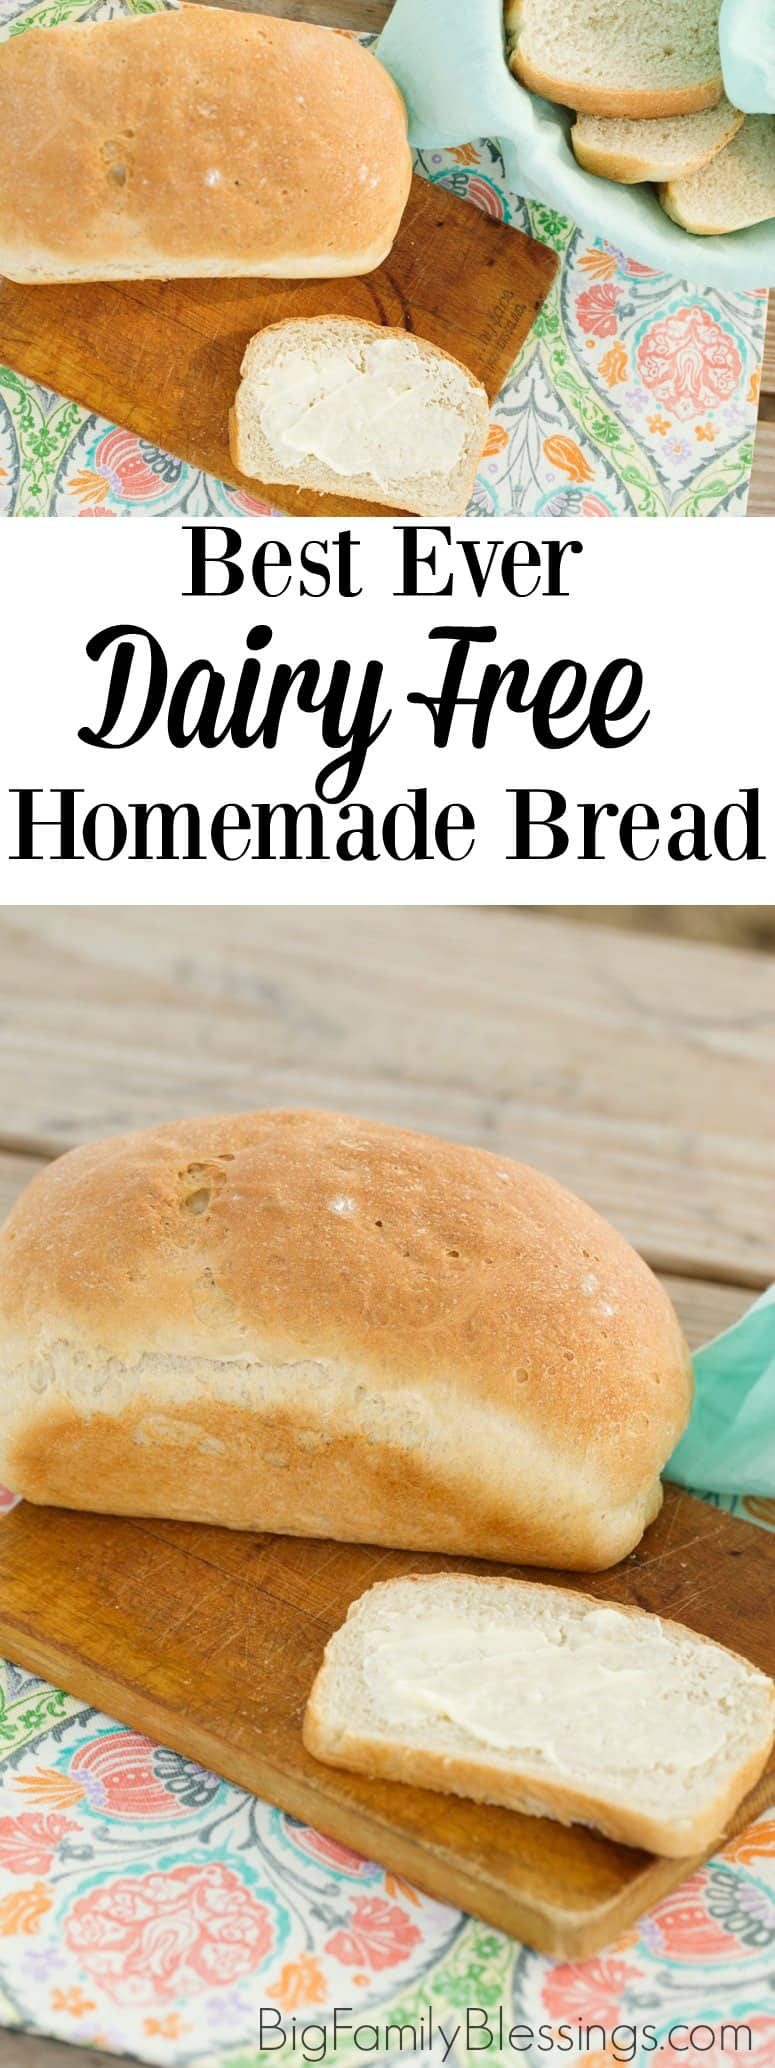 Best Ever Dairy Free Homemade Bread